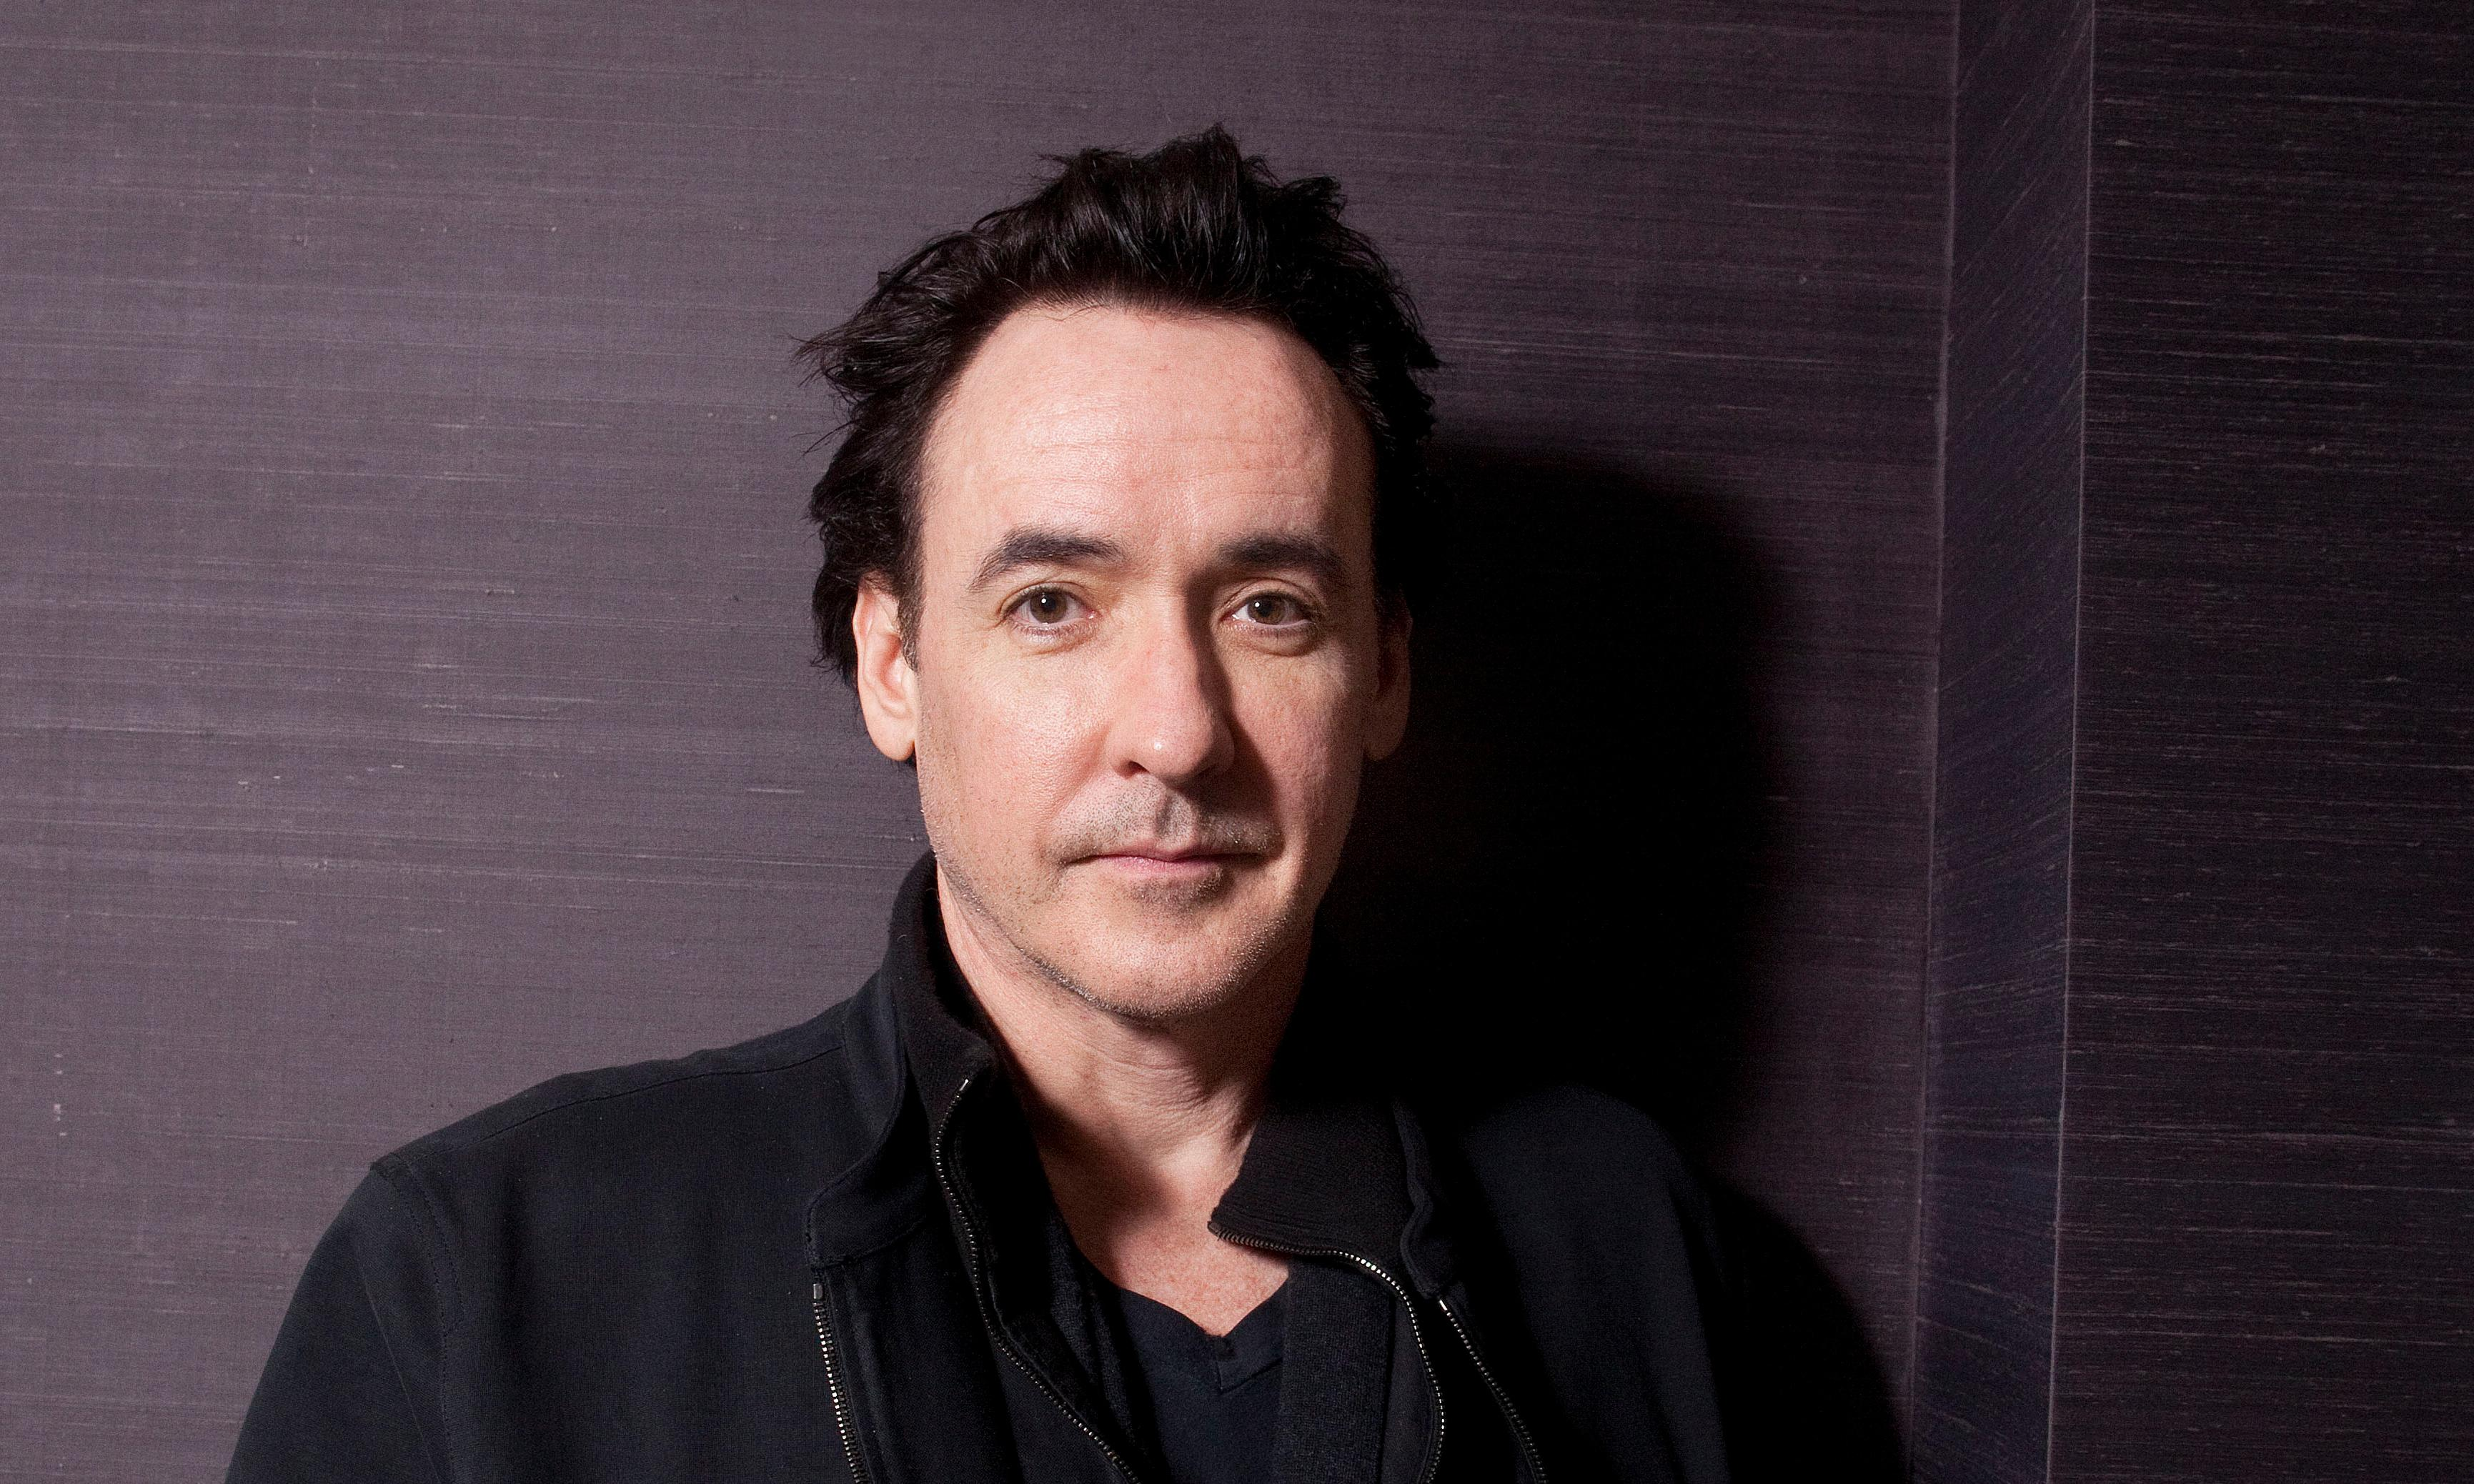 John Cusack under fire for antisemitic 'follow the money' tweet